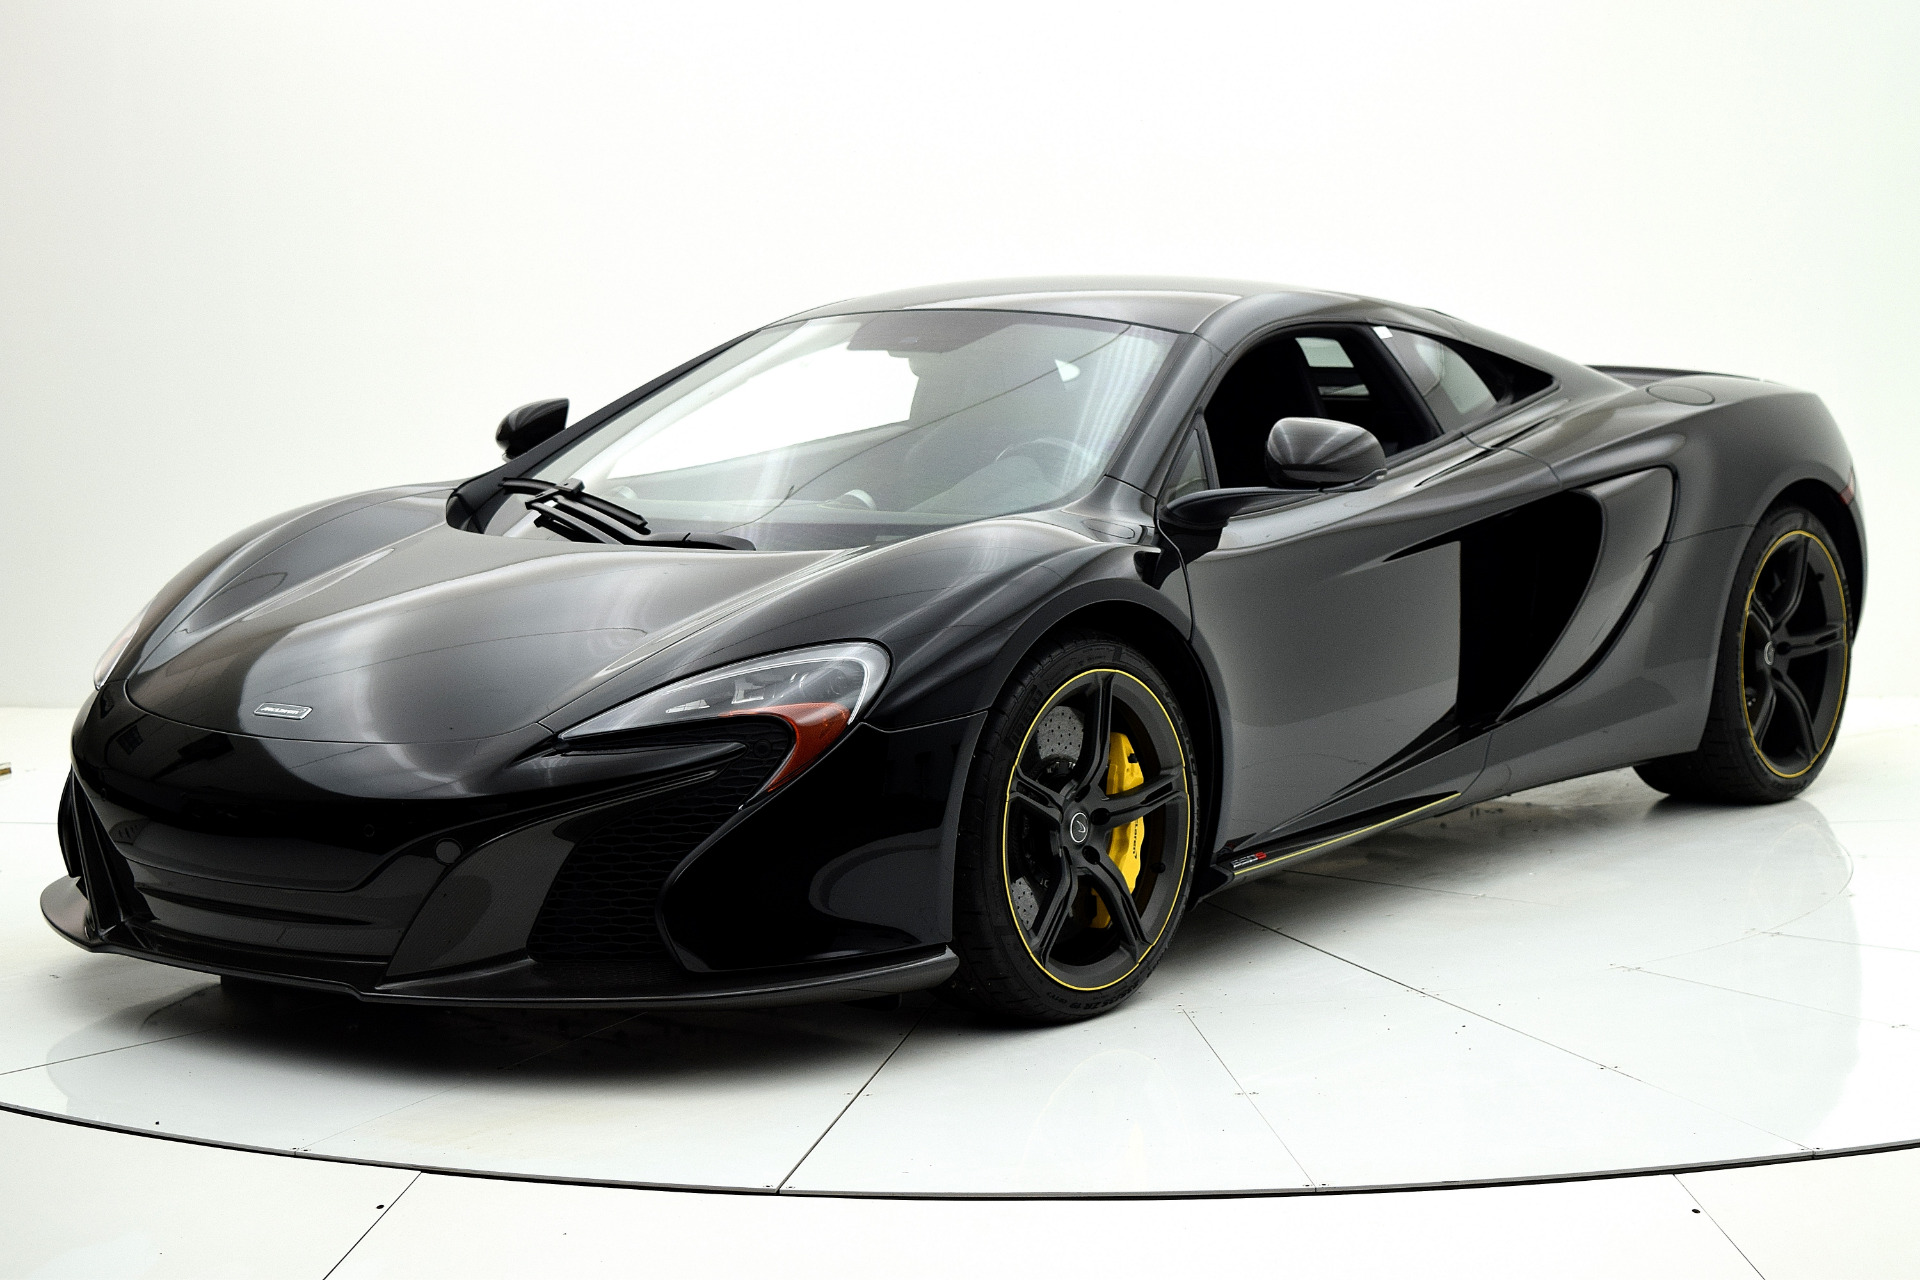 Used 2016 MCLAREN 650 S Coupe for sale $164,880 at F.C. Kerbeck Aston Martin in Palmyra NJ 08065 2